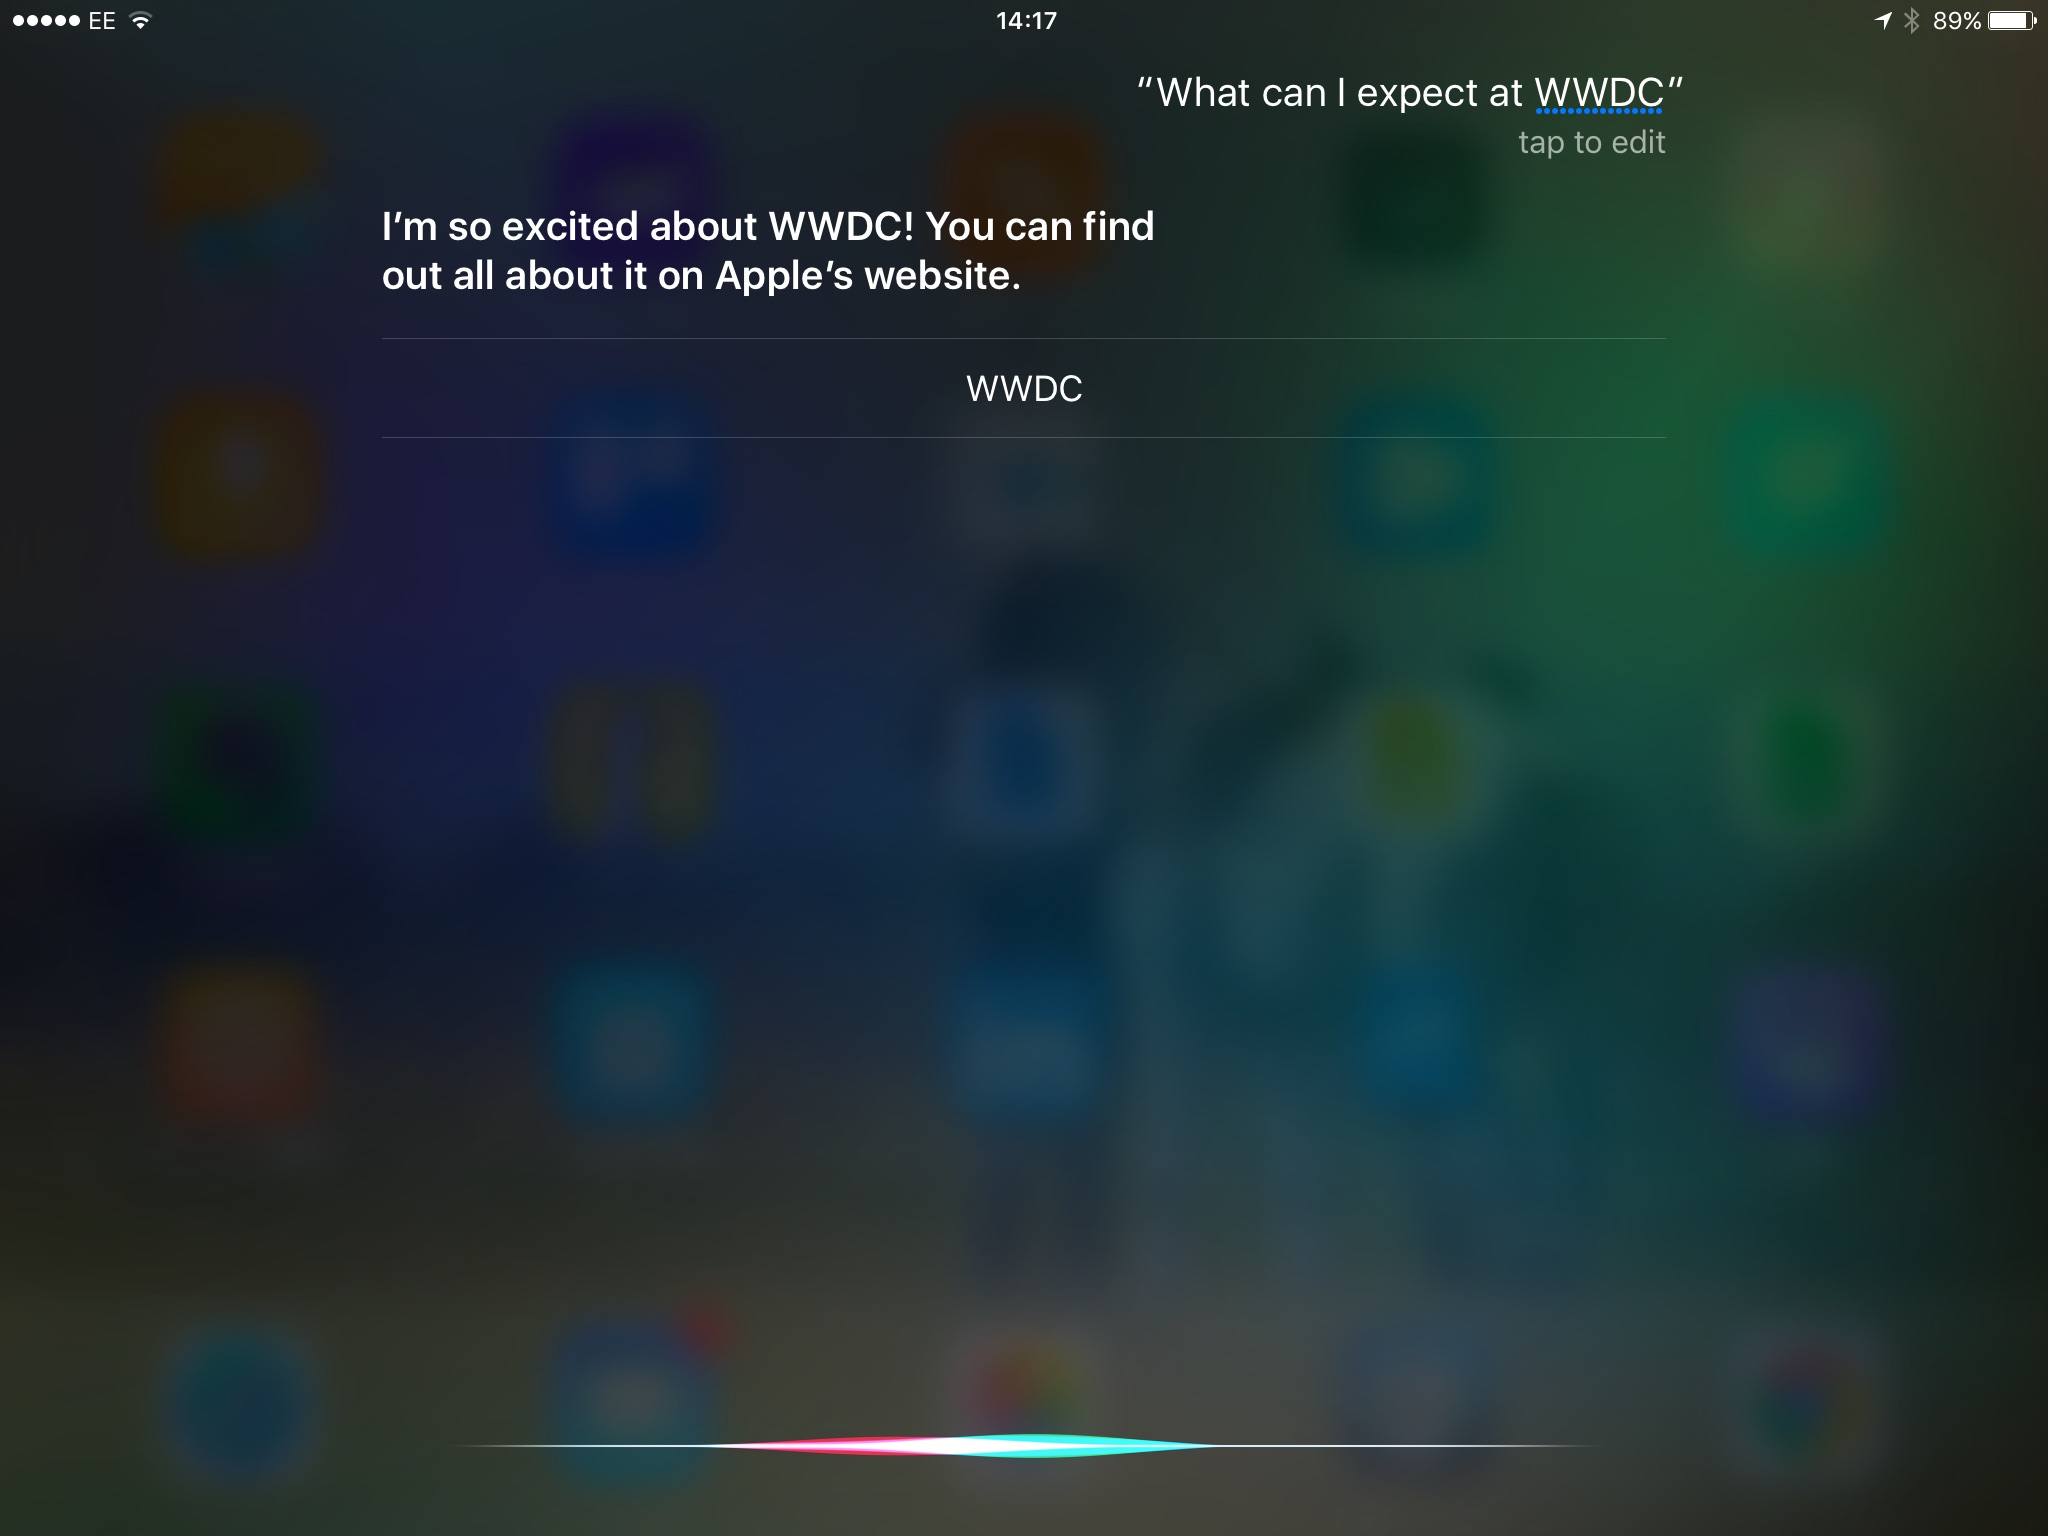 Siri - Apple's Virtual Assistant